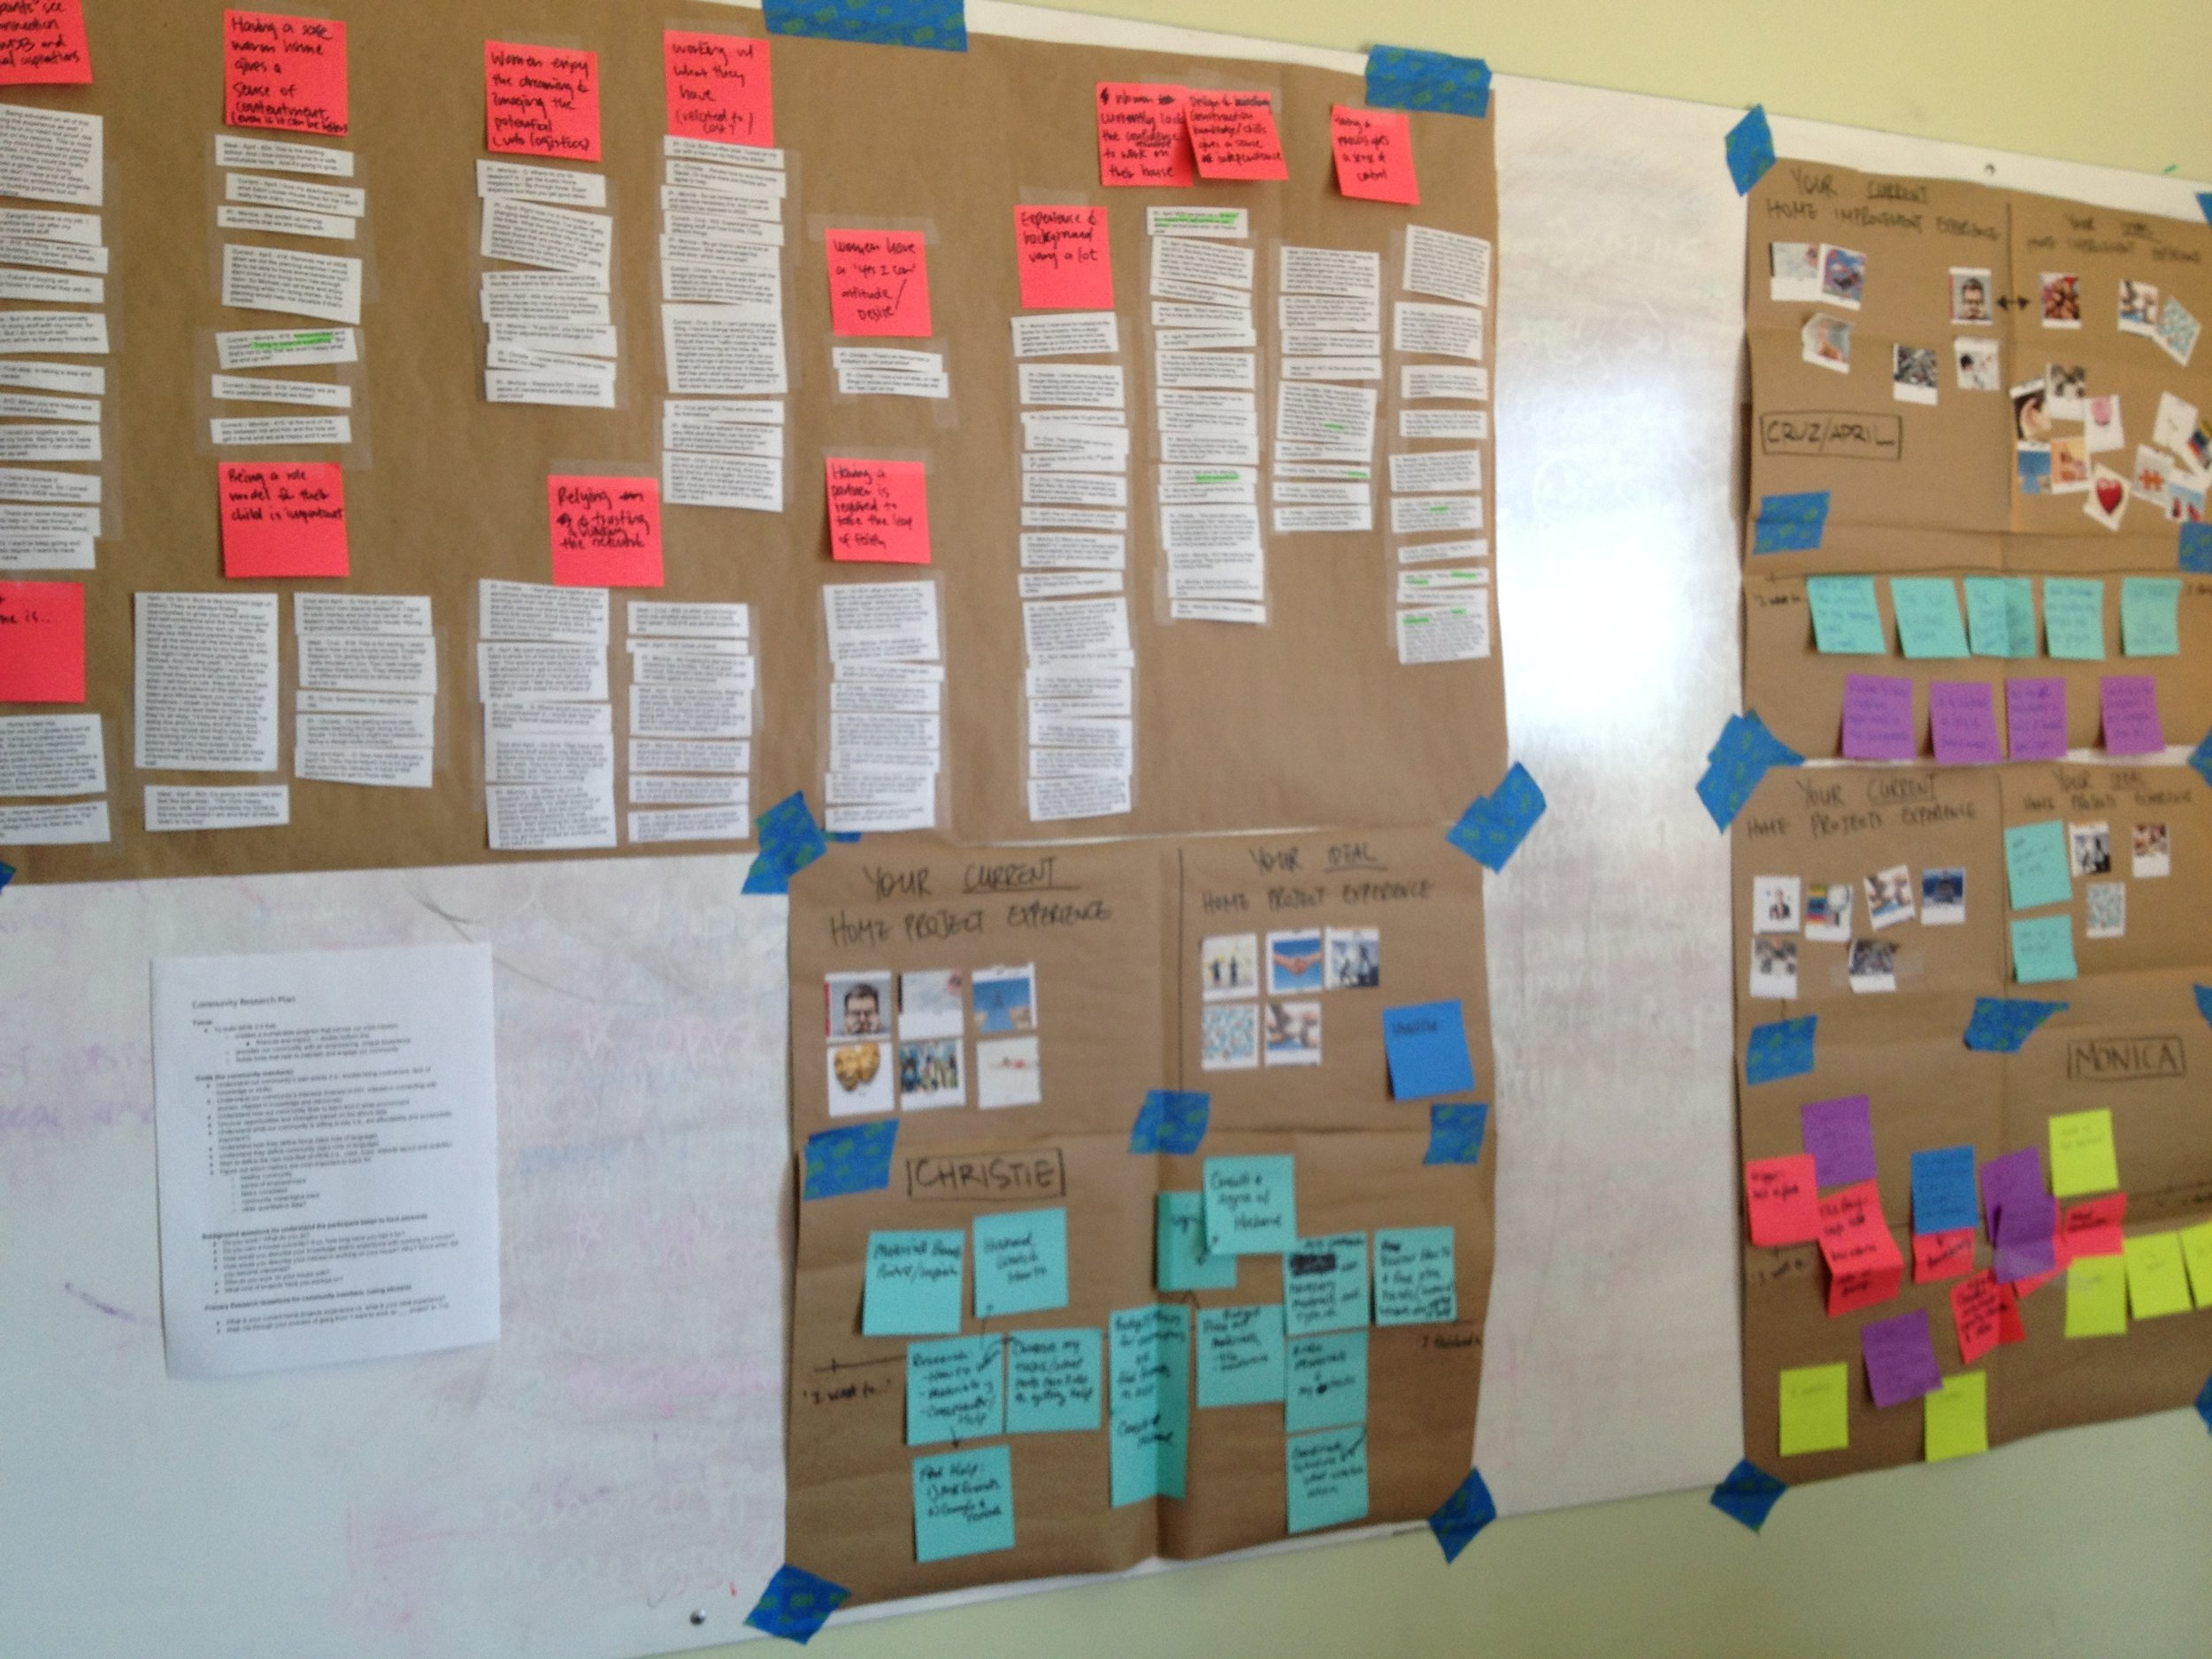 Affinity mapping process